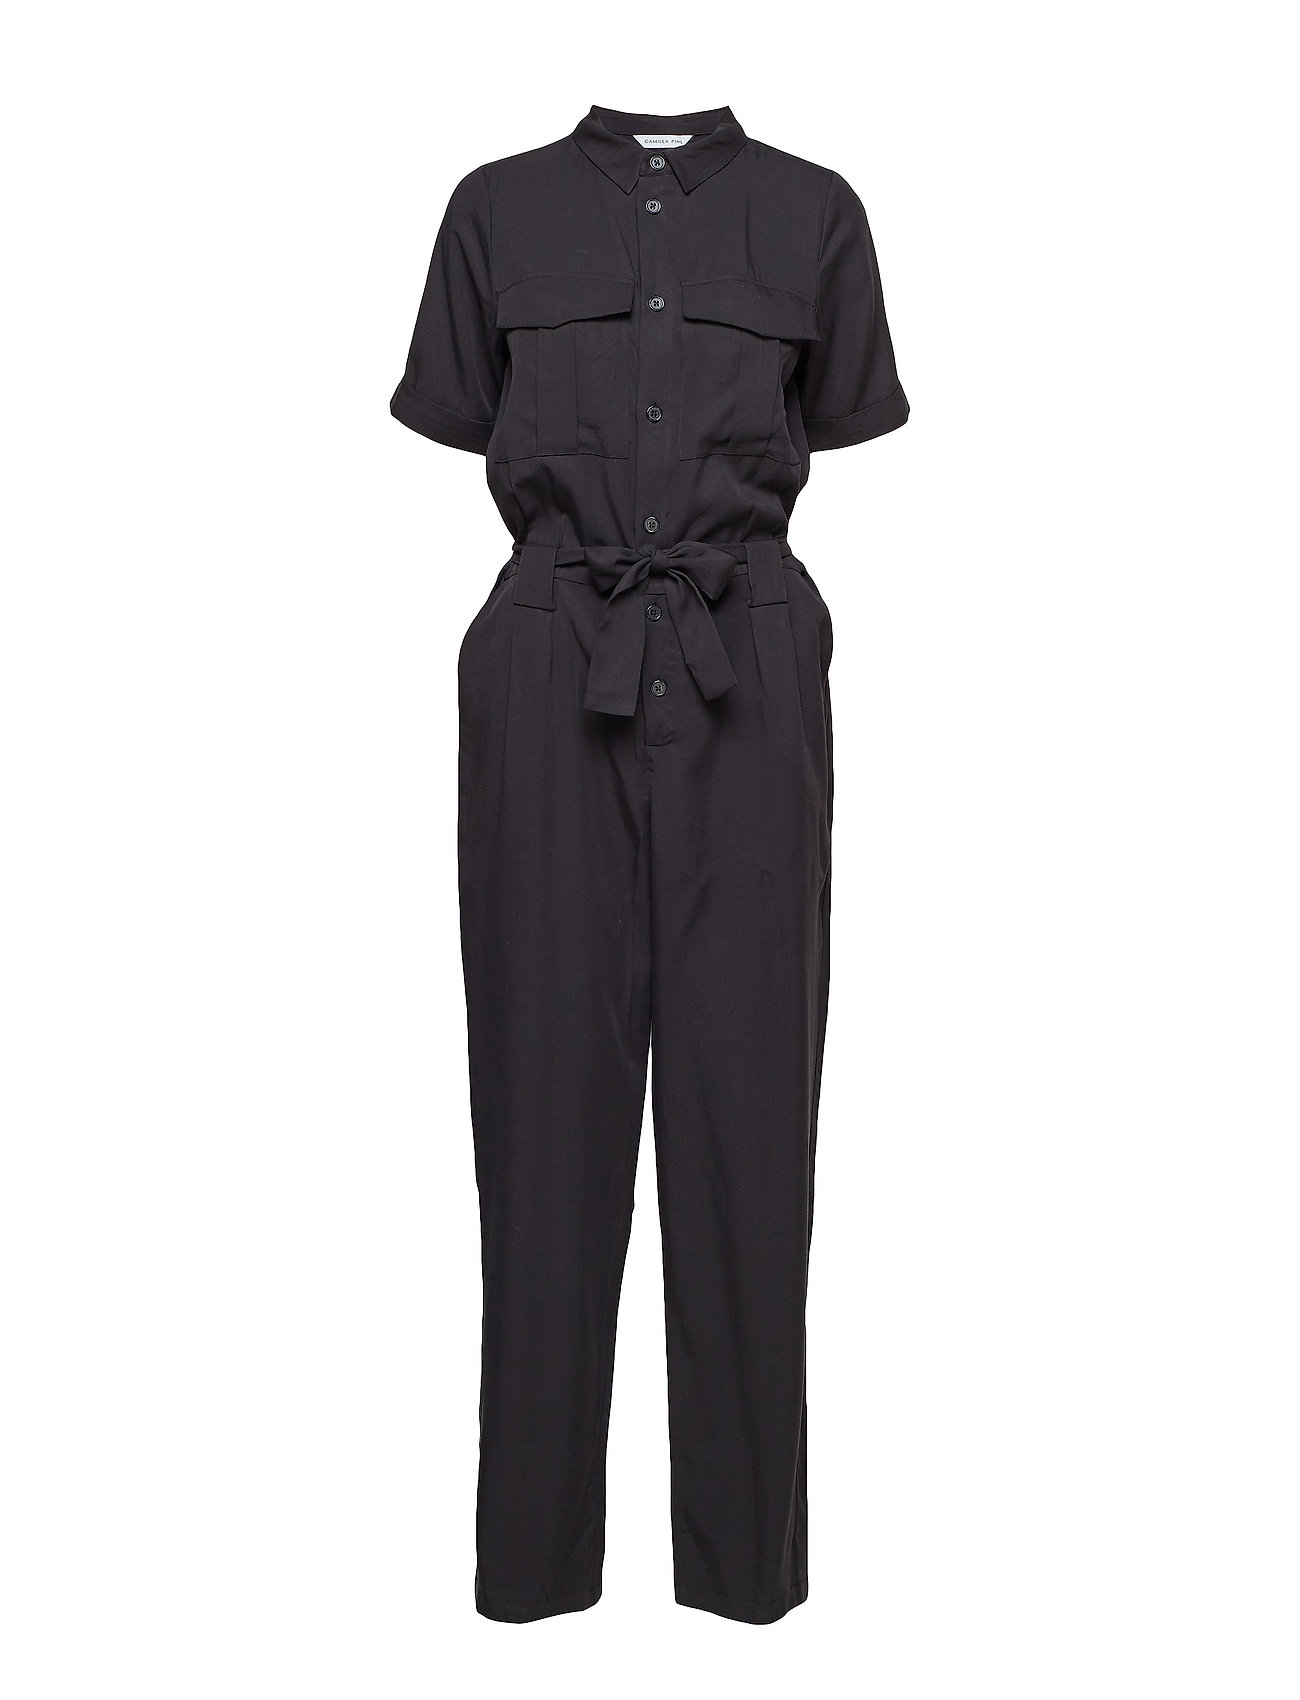 Camilla Pihl Jungle Jumpsuits